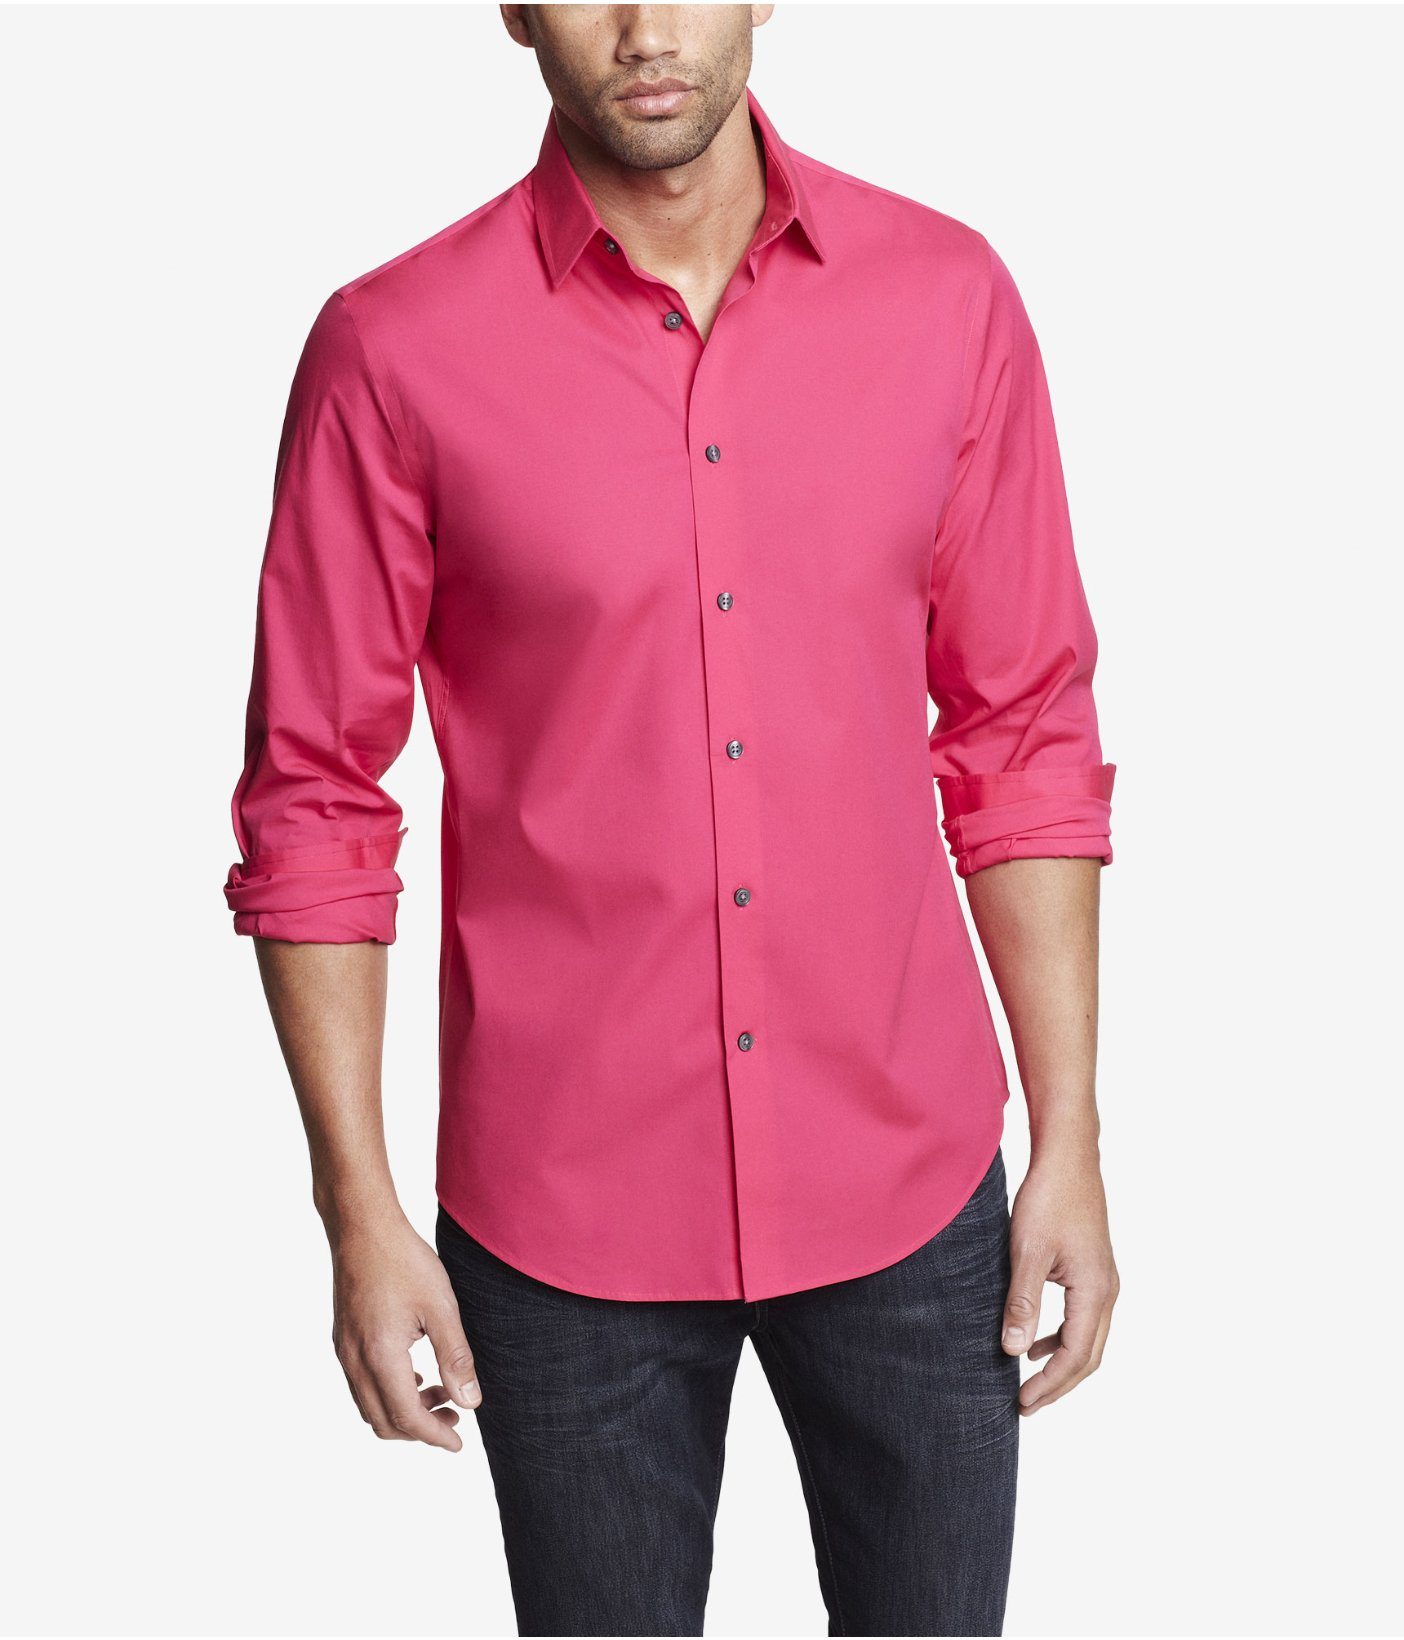 Dark Pink Mens Shirt | Is Shirt